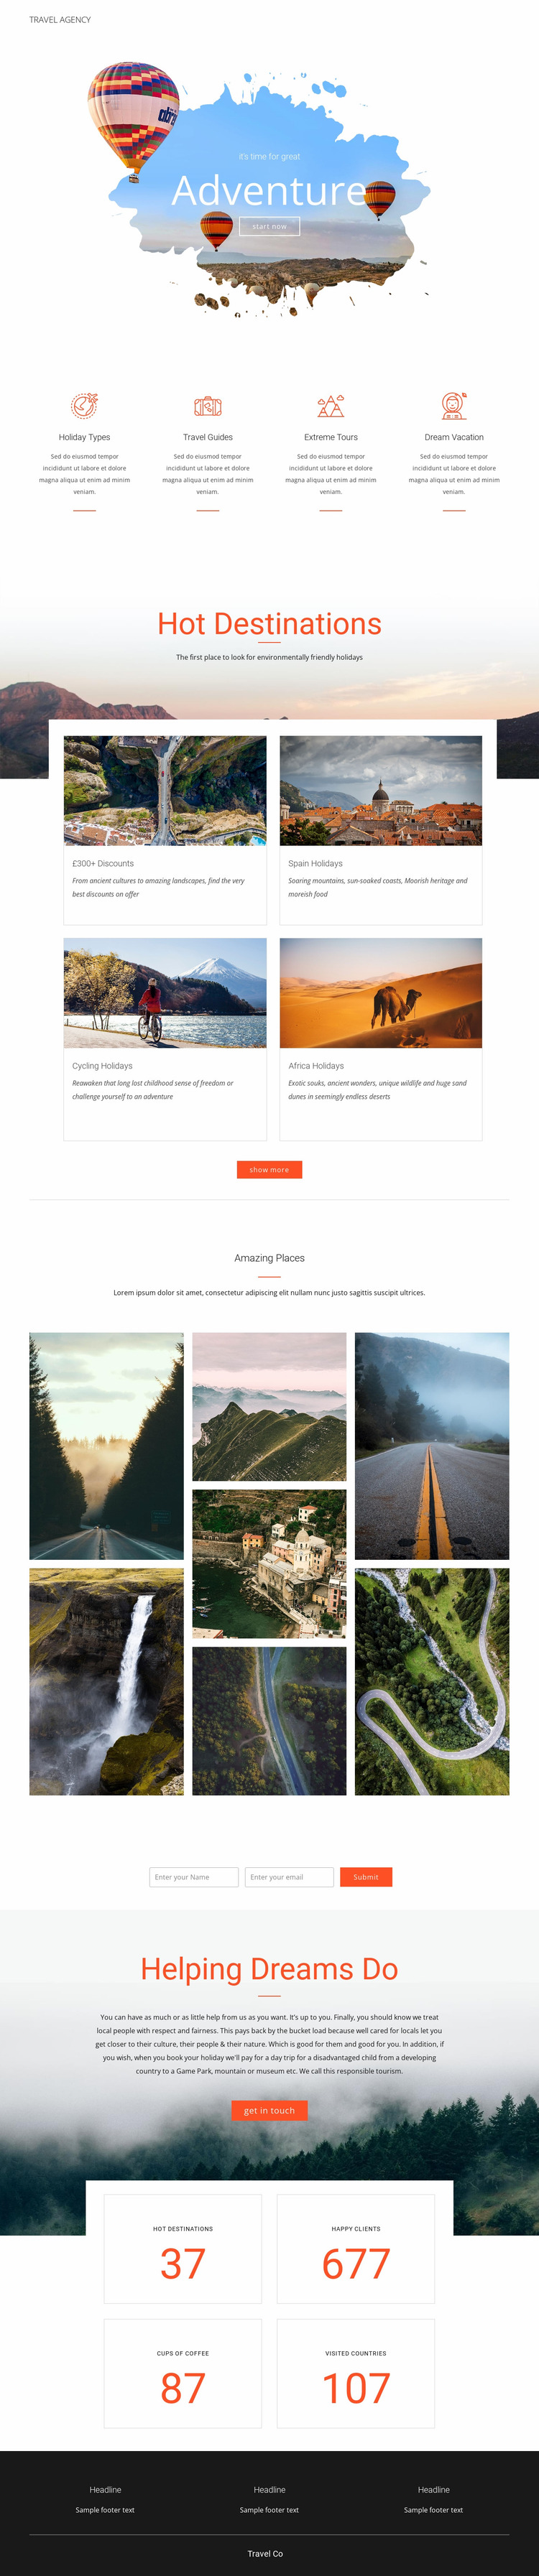 Adventure tours and travel Website Mockup